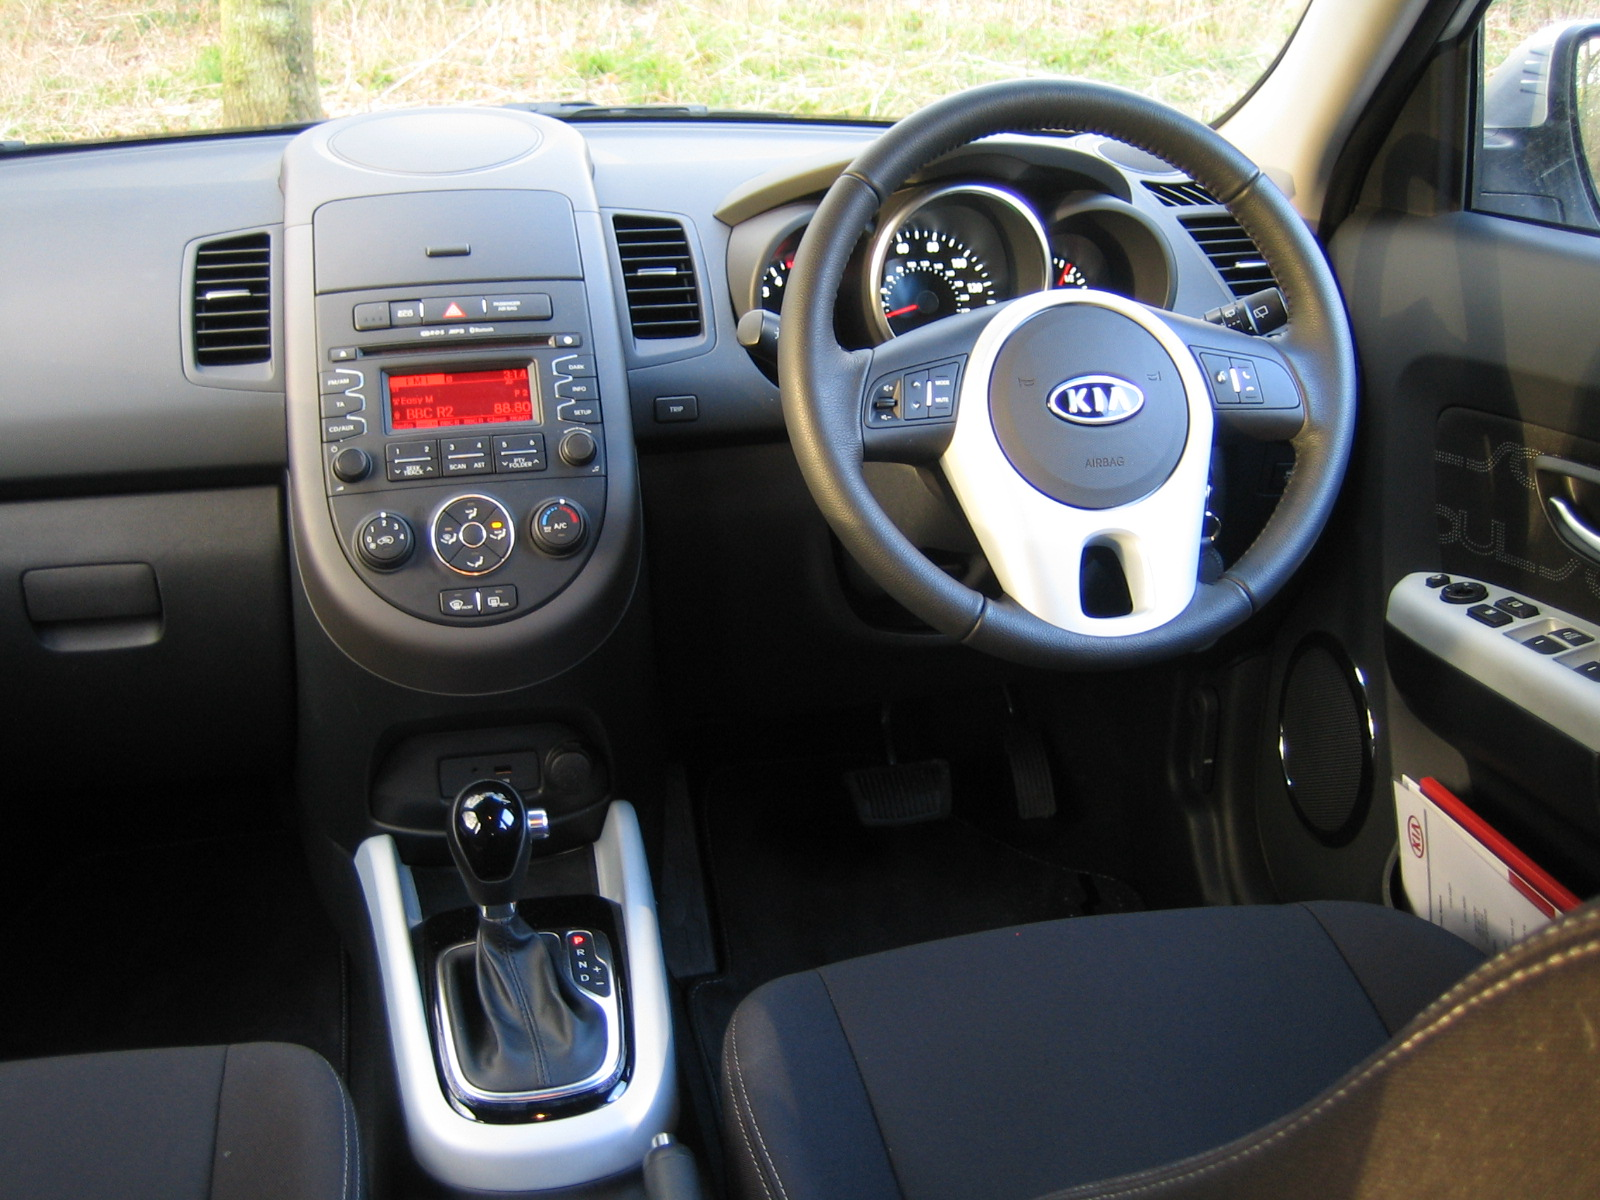 ... , and in Kia's case, the Soul has been a big hit with customers